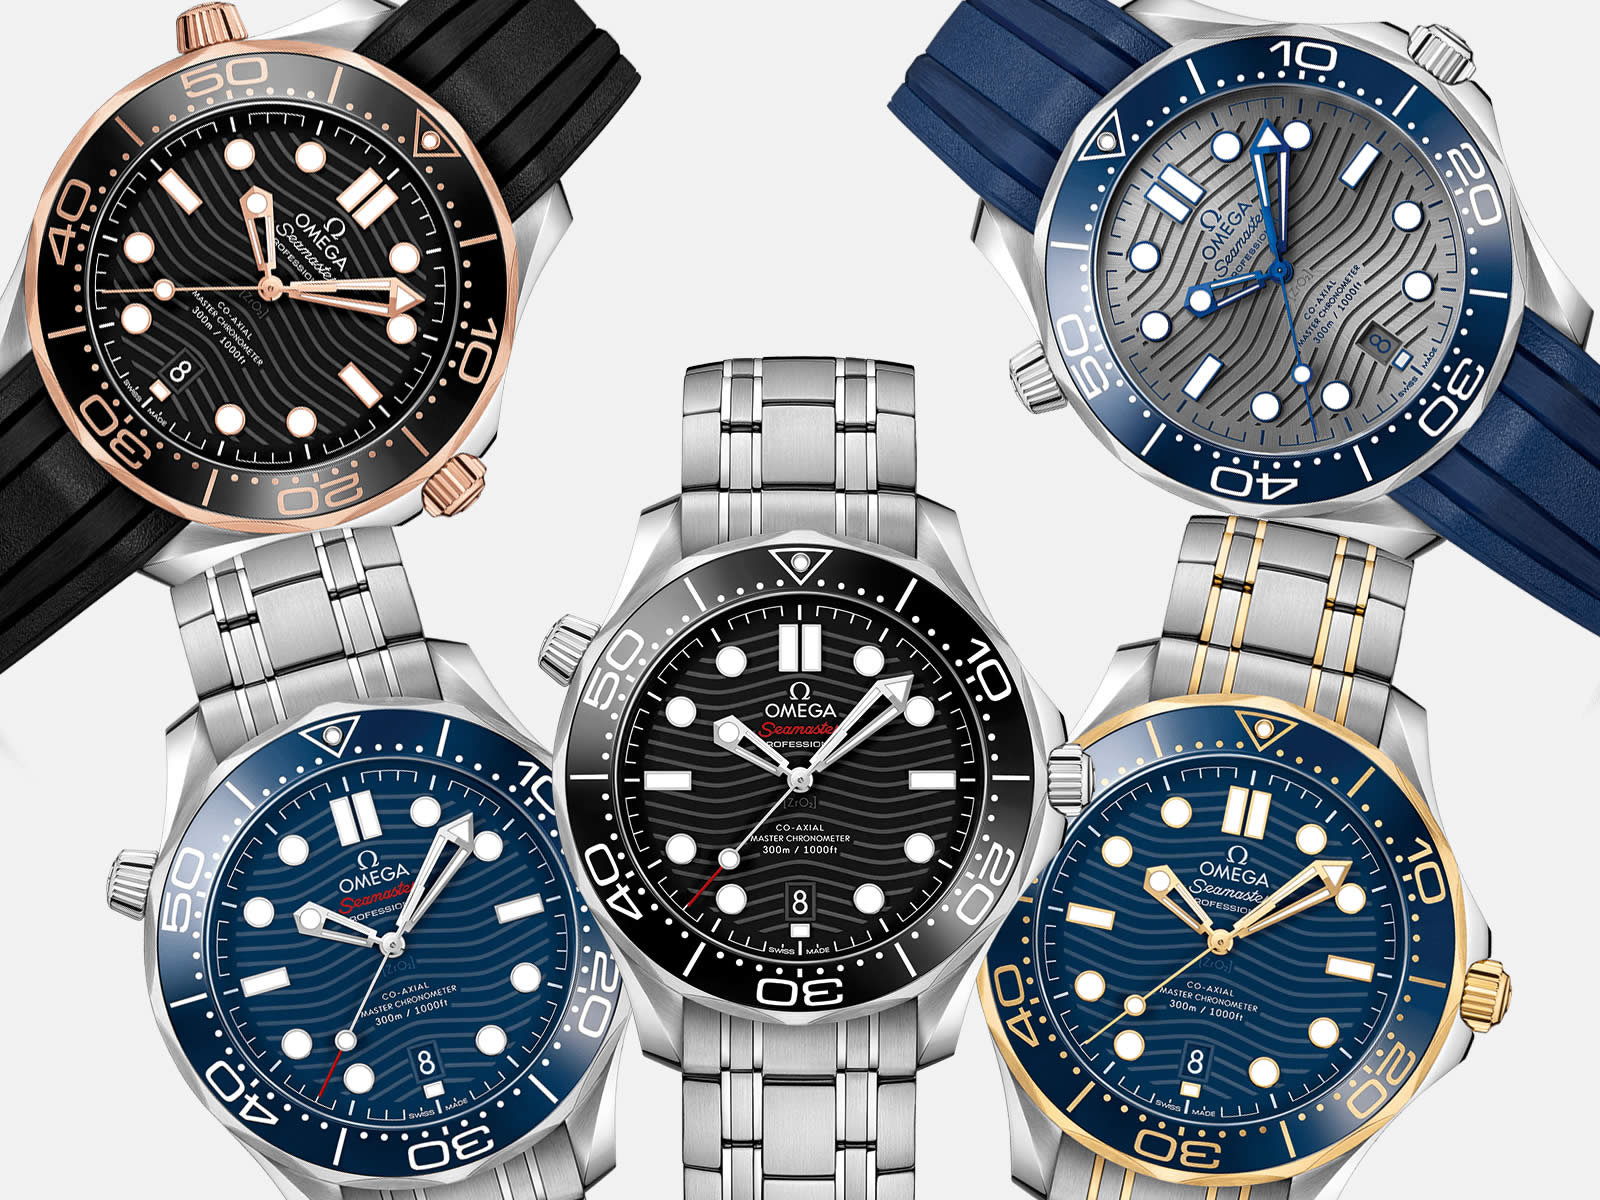 omega-seamaster-diver-300m-collection-1-.jpg